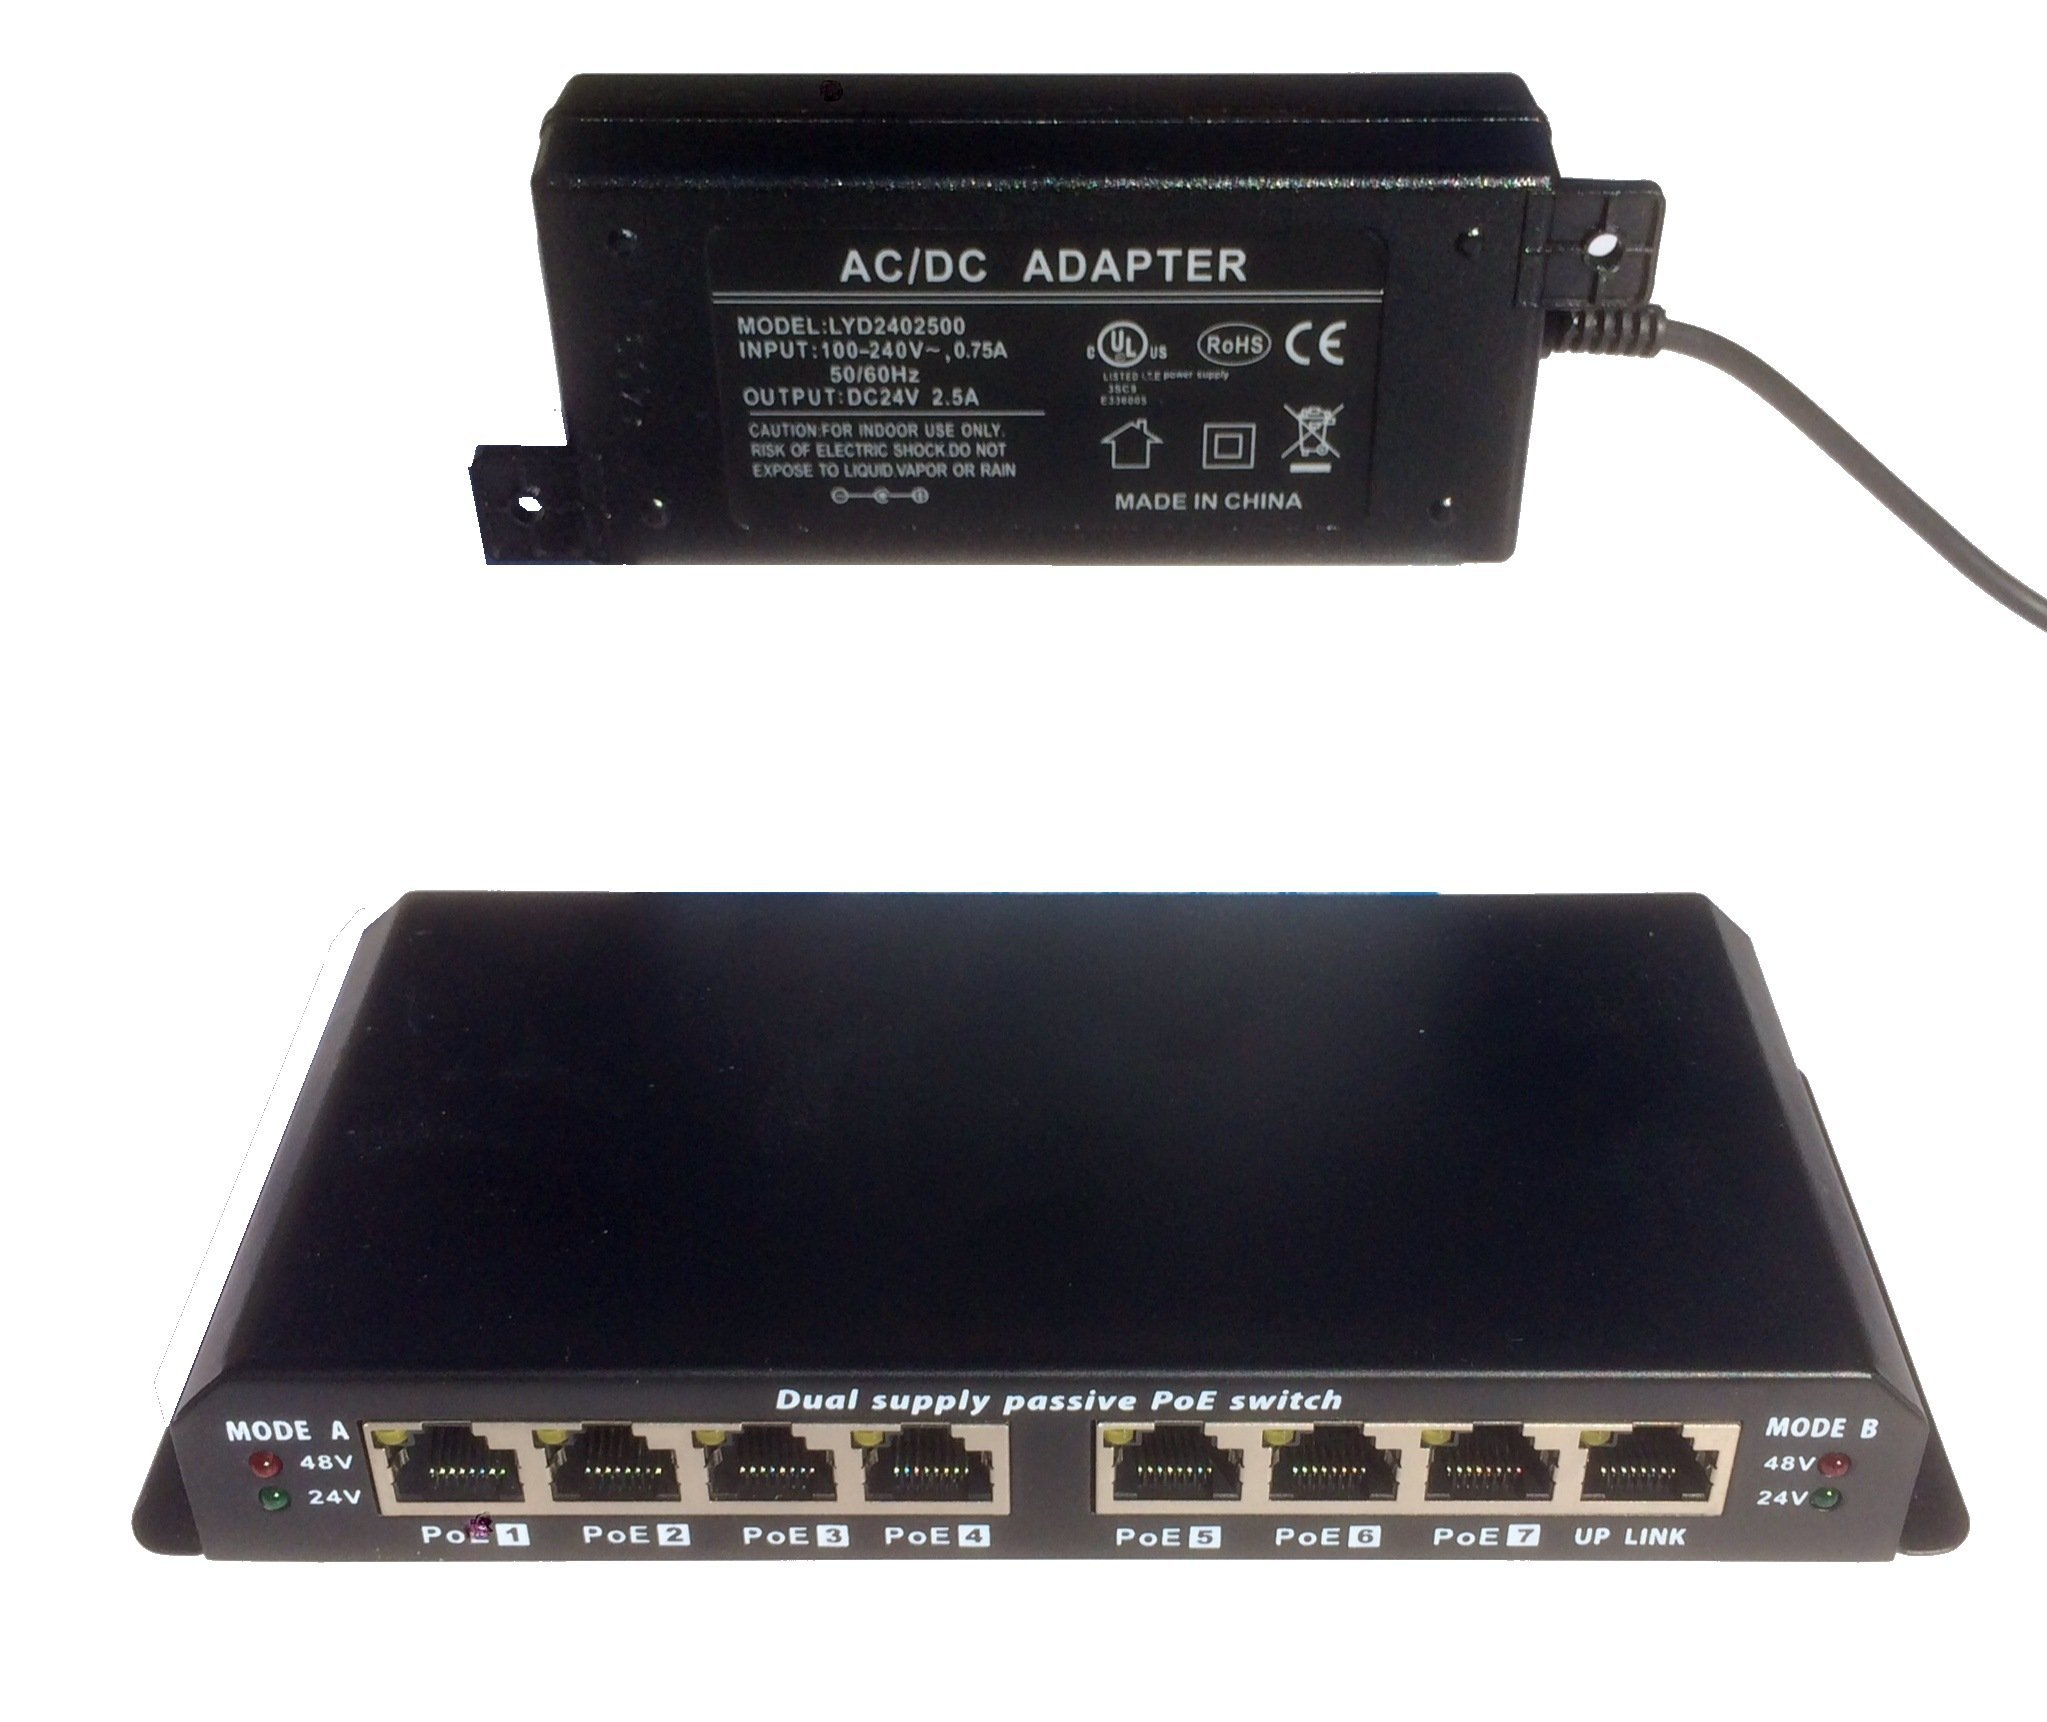 8 port Ethernet switch with Passive PoE on 7 ports -WS-POES-8-7-24v60w - power over ethernet for Ubiquiti, Mikrotik and OpenMesh with 24 volt supply at 60 watts, for any 24v device